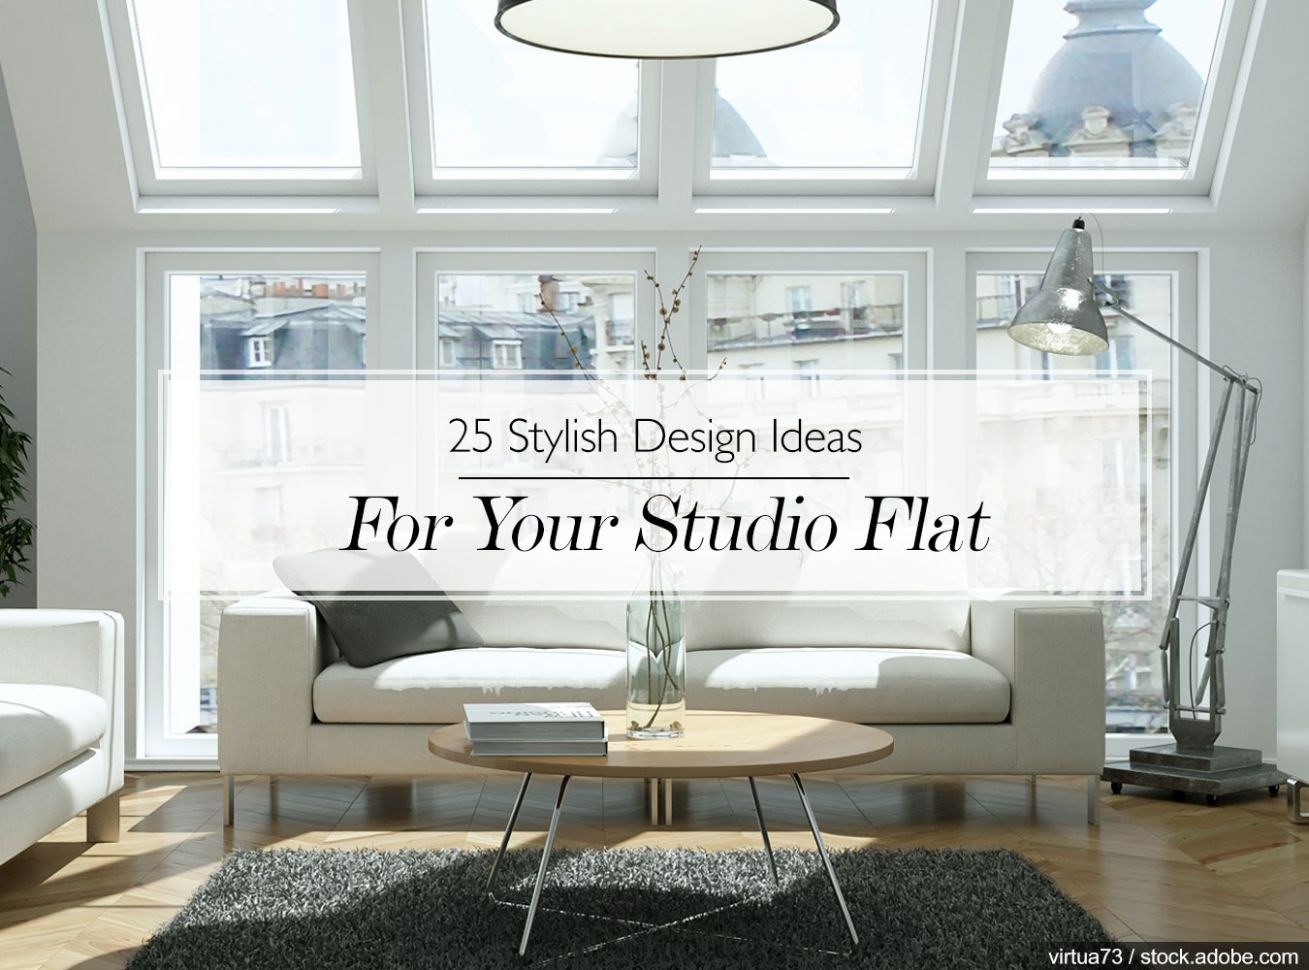 12 Stylish Design Ideas For Your Studio Flat | The LuxPad